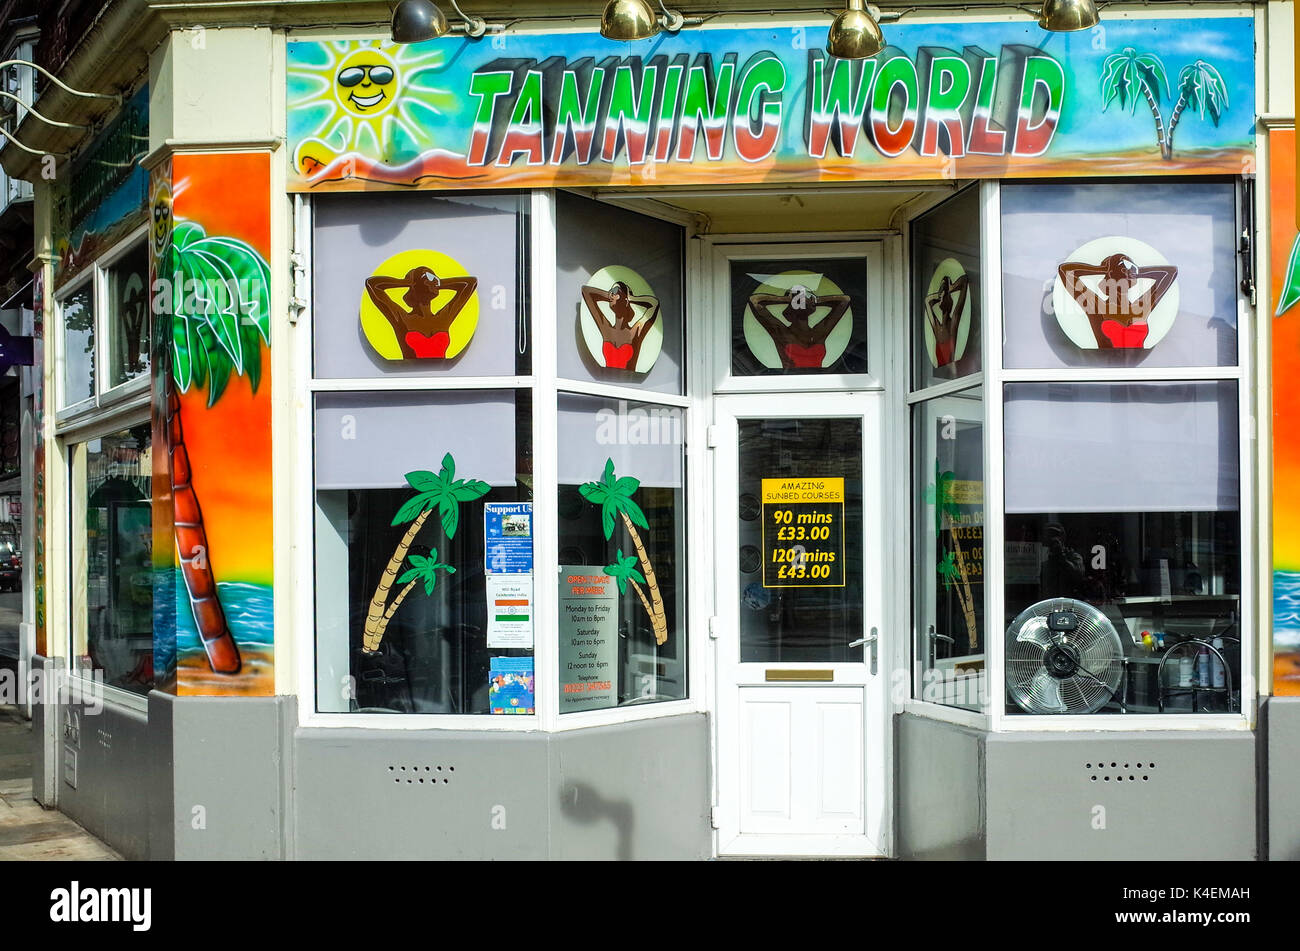 Tanning World Tanning Salon in Mill Road, Cambridge UK - Stock Image